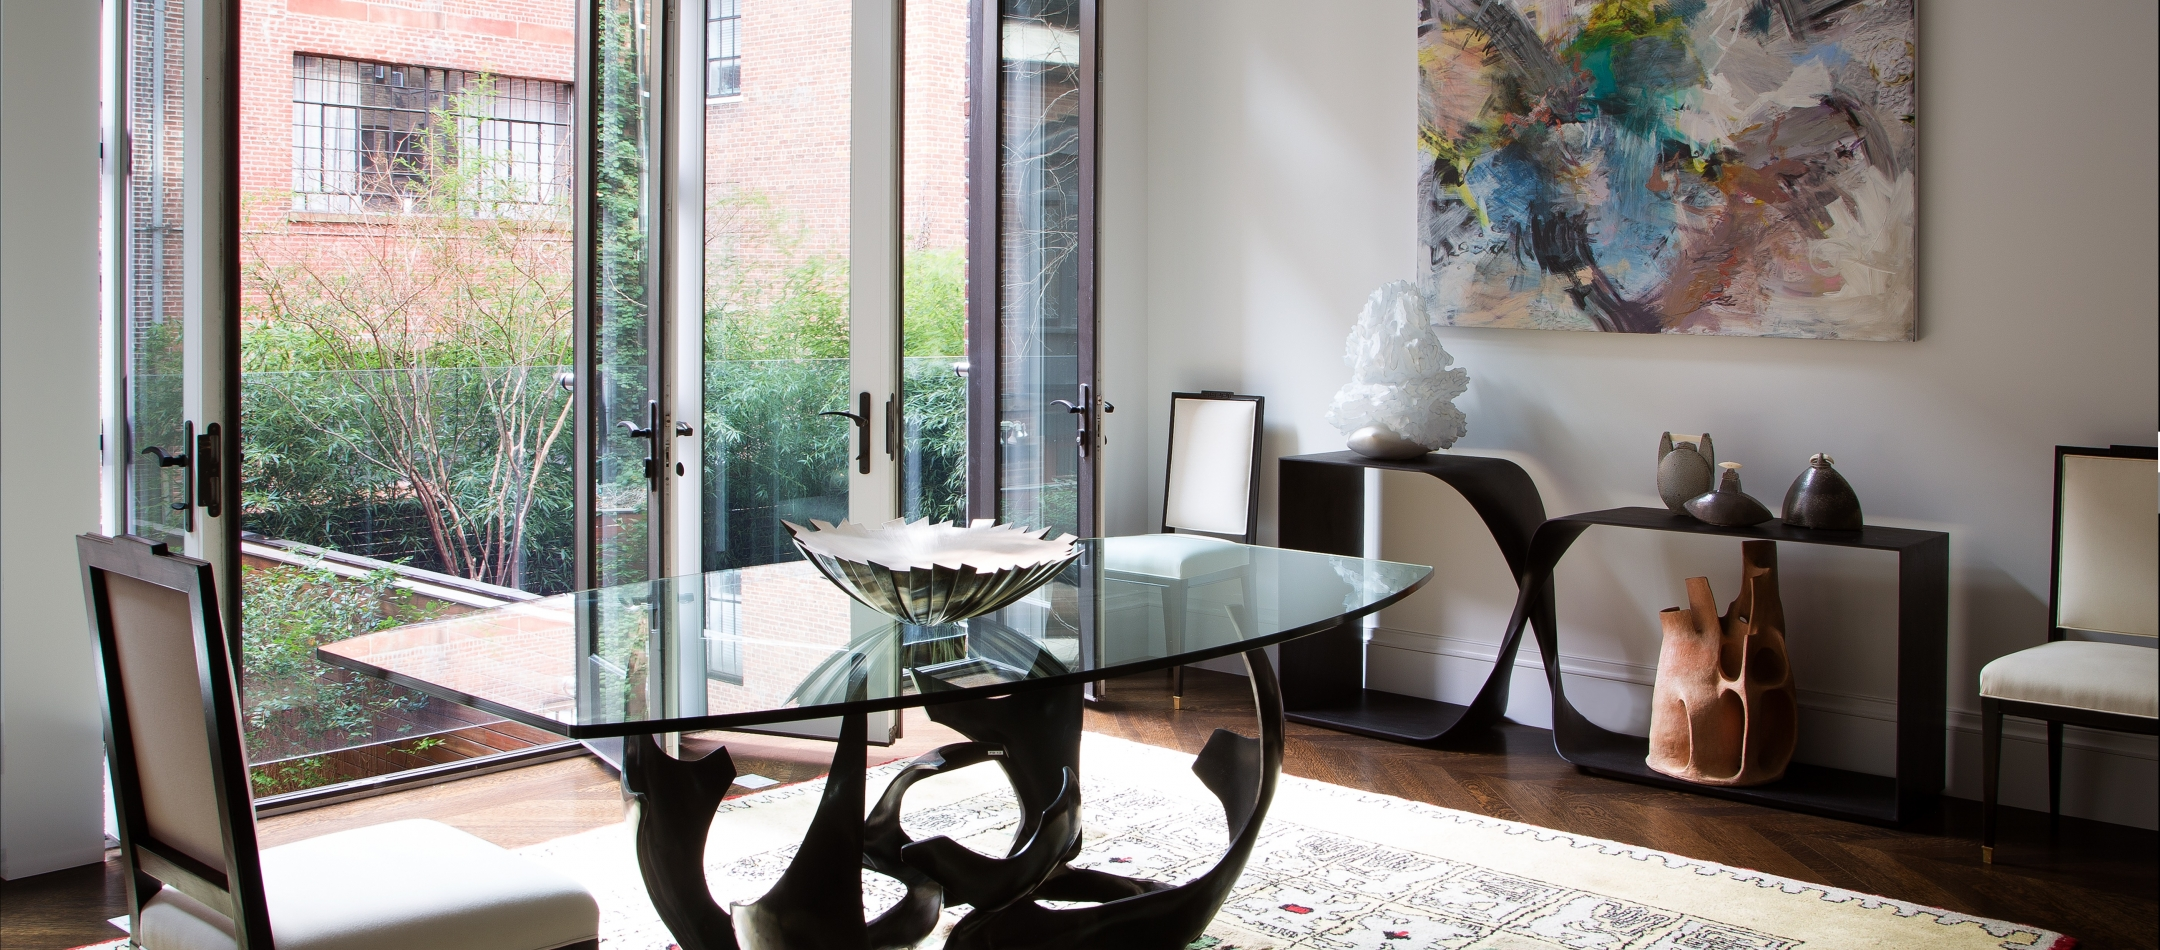 Three of a set of six dining chairs made by Andre Mercier circa 1940; a glass topped, patinated bronze dining table by Fred Brouard; a table top sculpture by English silversmith Kevin Grey; and one of a pair of Maison Leleu carpets from 1957.